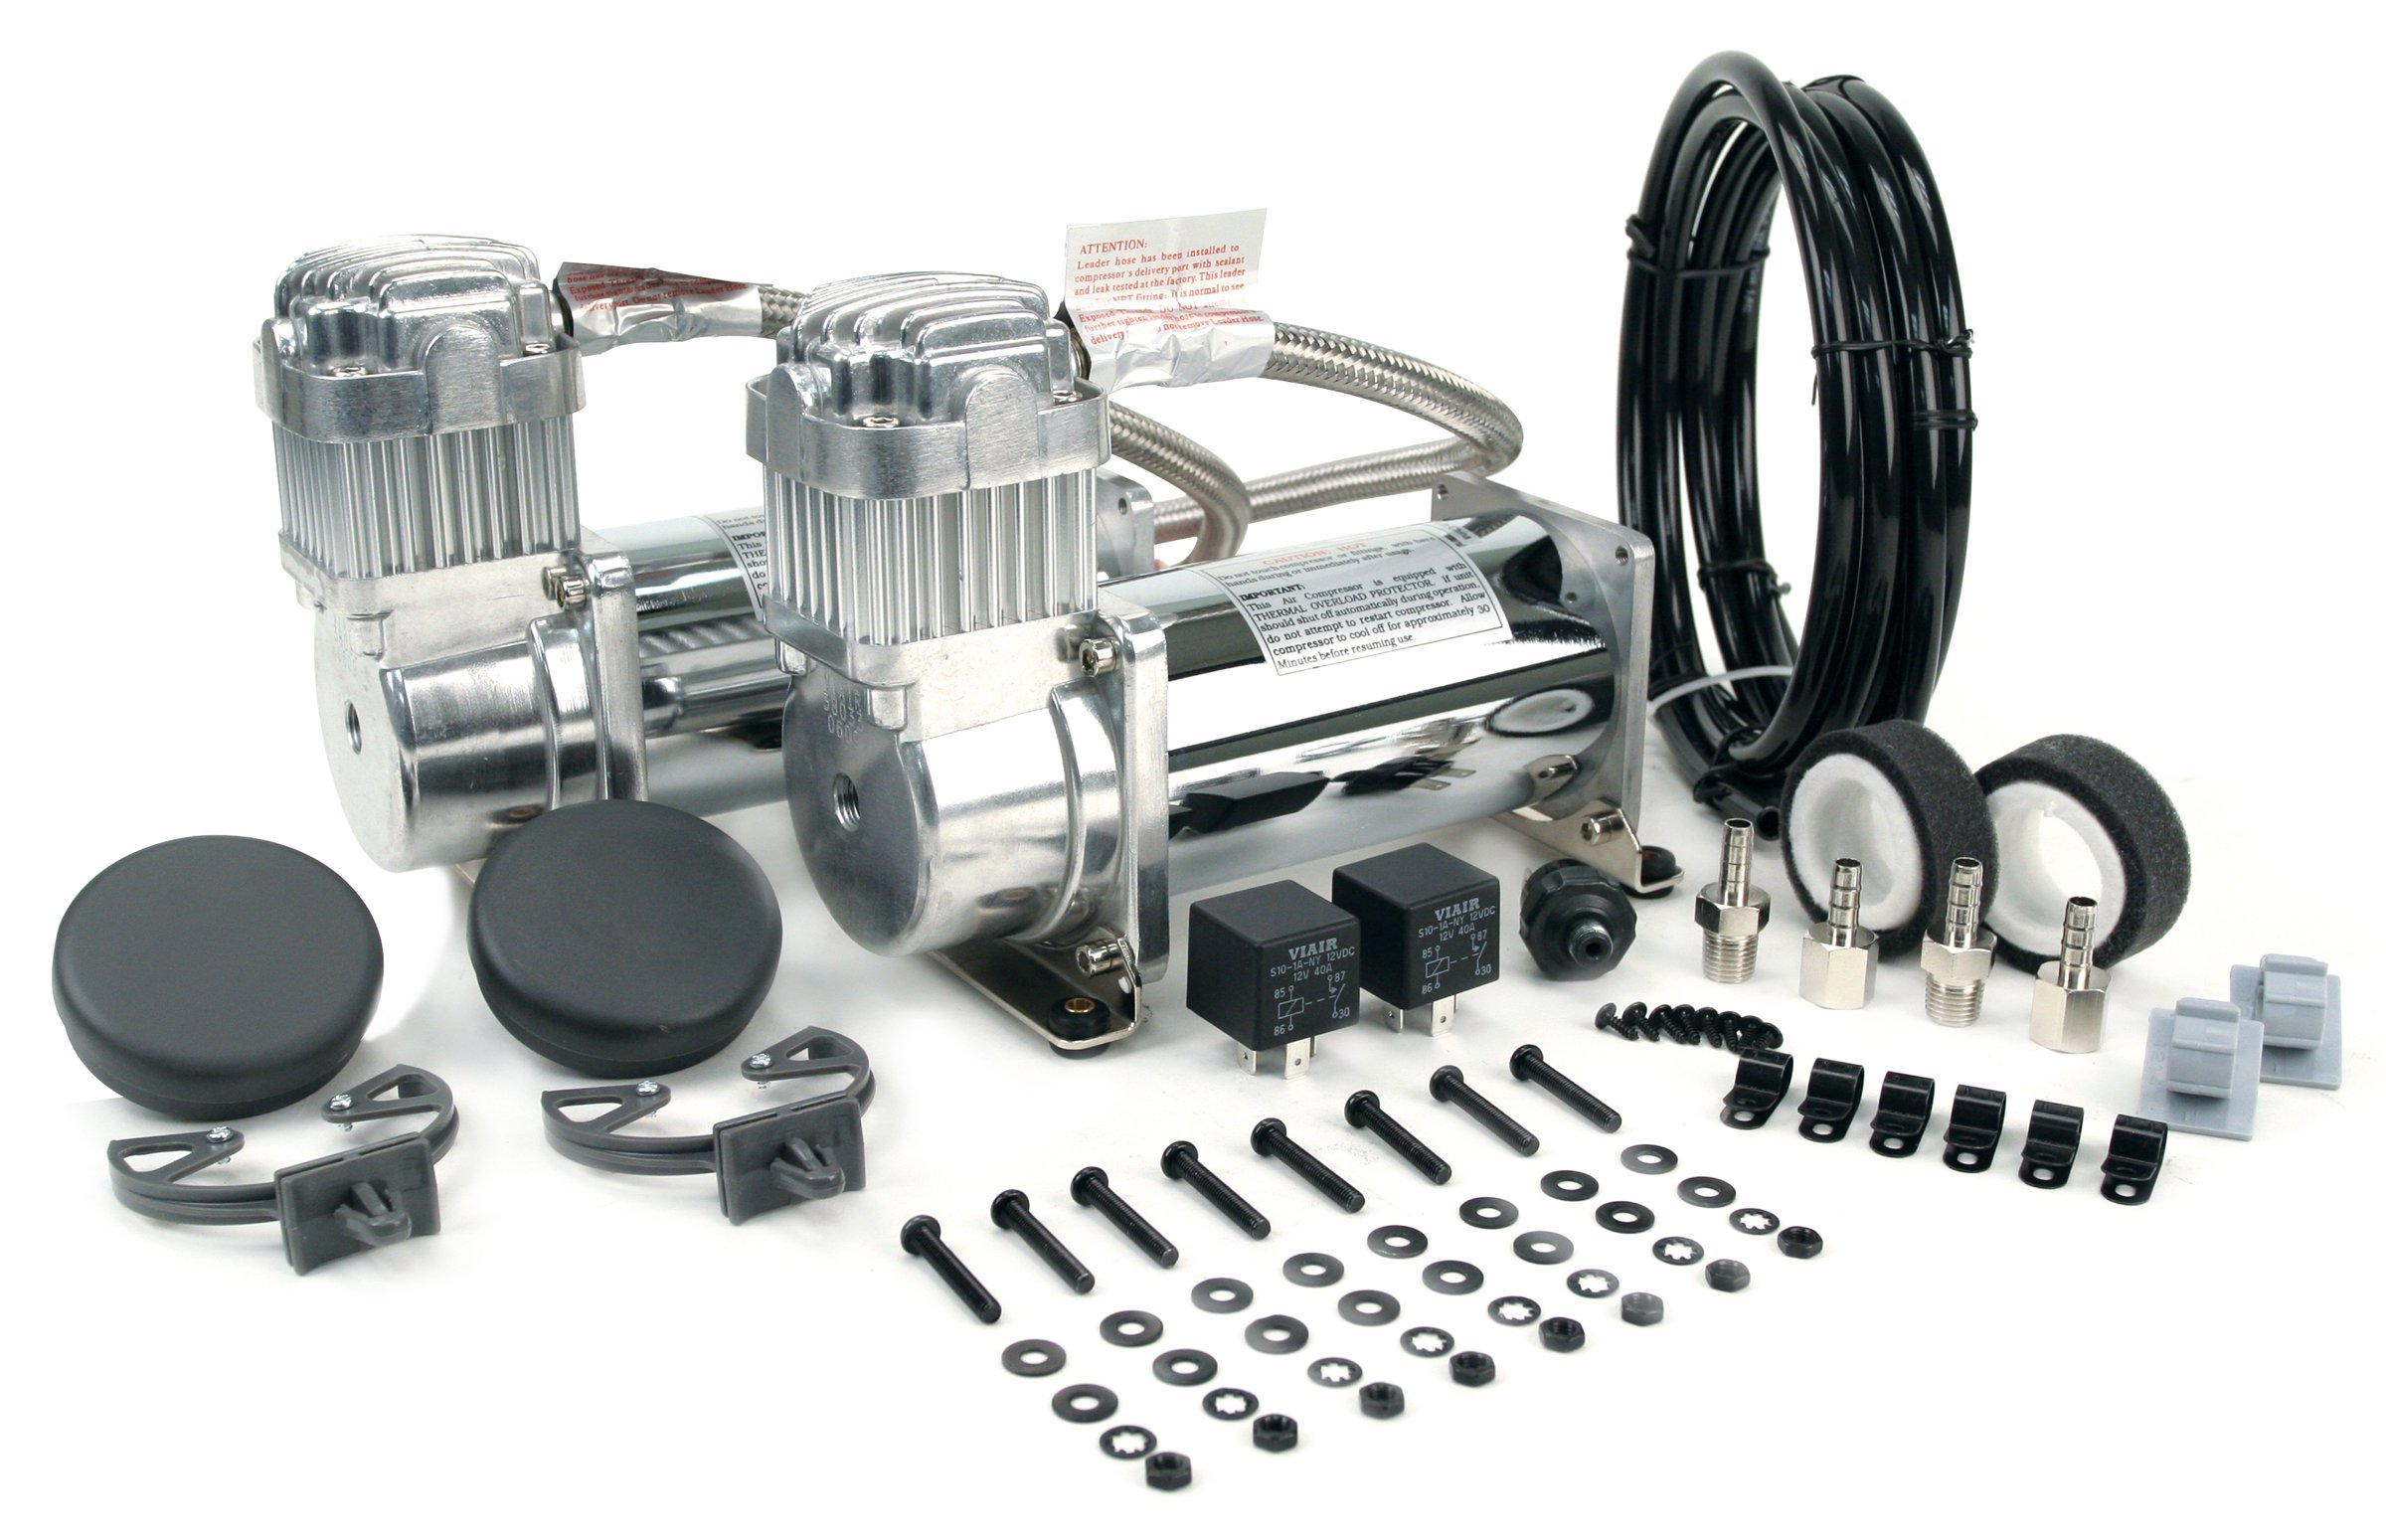 VIAIR 400C 150 PSI Dual Performance Value Pack - Chrome by VIAIR (Image #1)